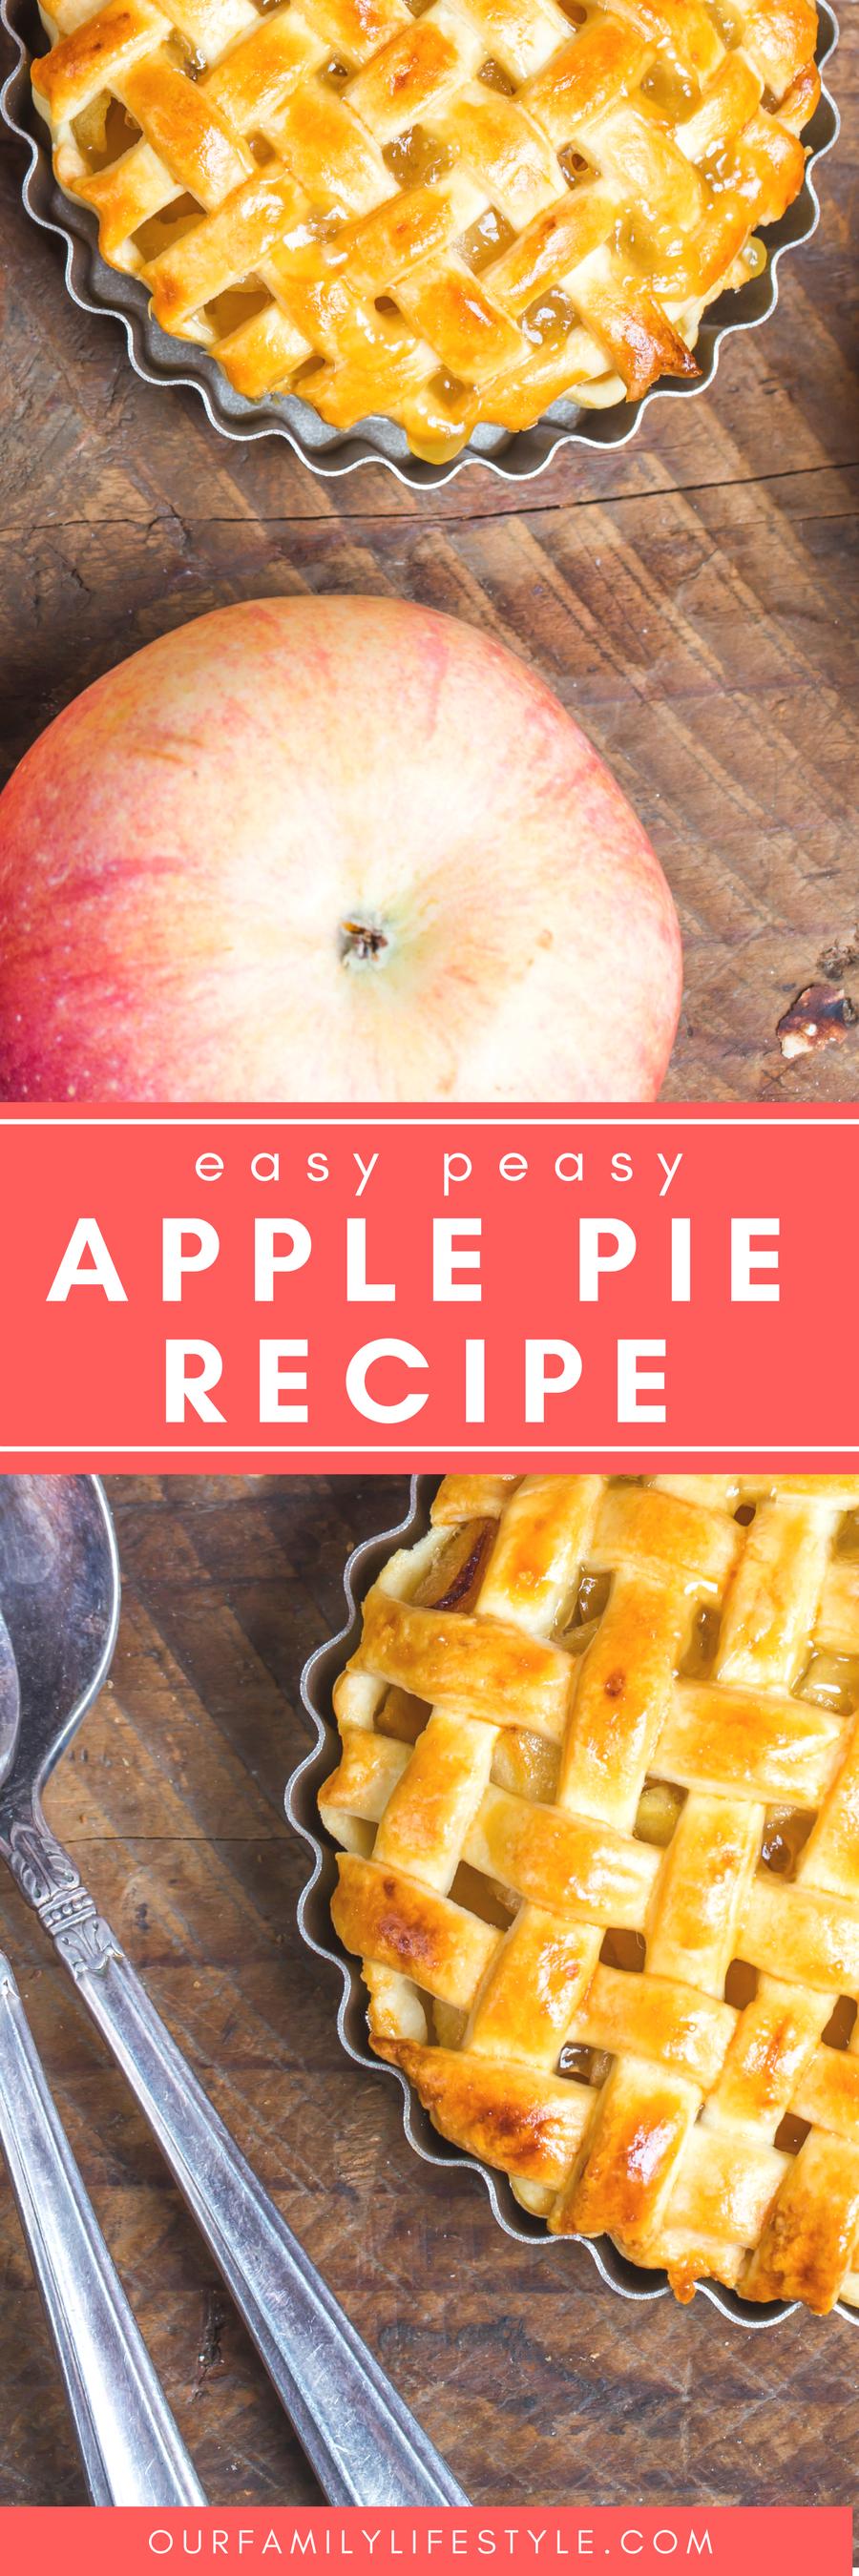 I enjoy the easy recipes. The ones that may not necessarily be from scratch, but are still good nonetheless. For instance, this not really homemade Apple Pie Recipe.